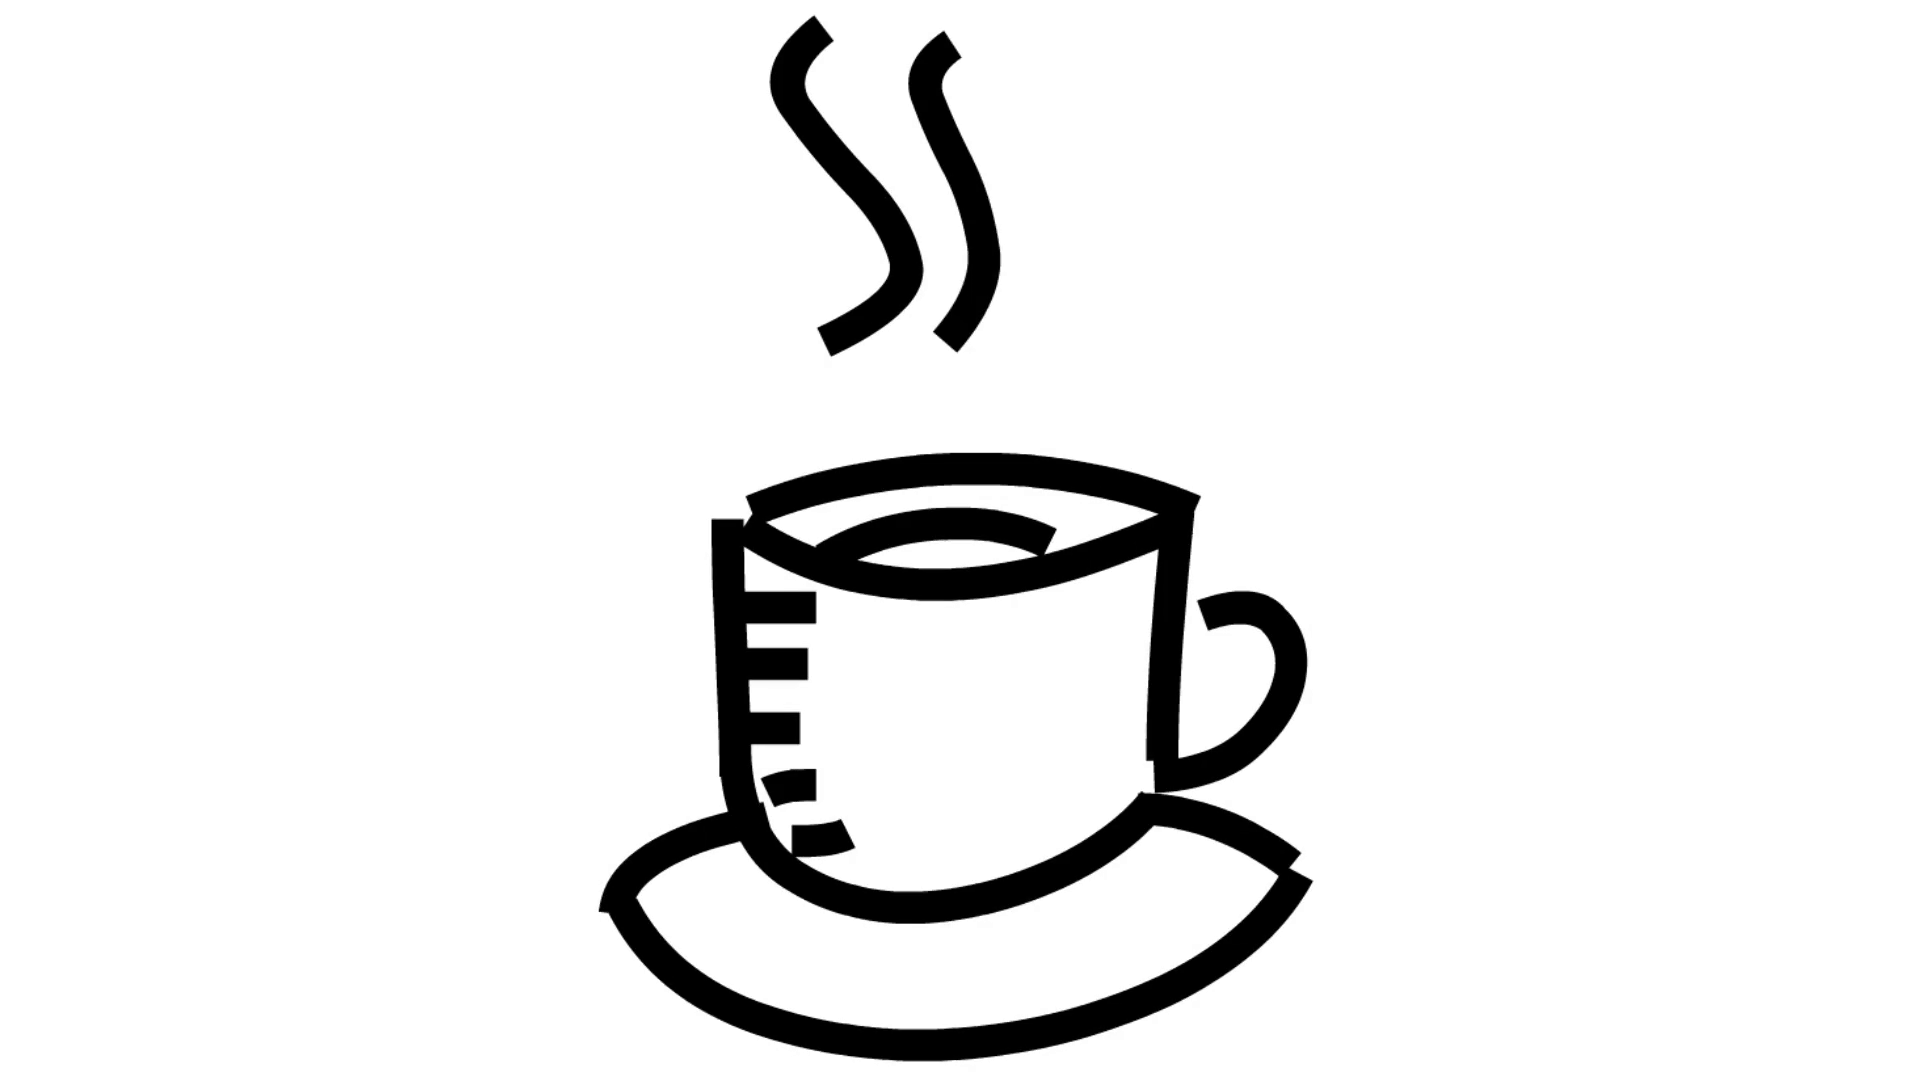 Coffee or Tea animation illustration hand drawing transparent background.